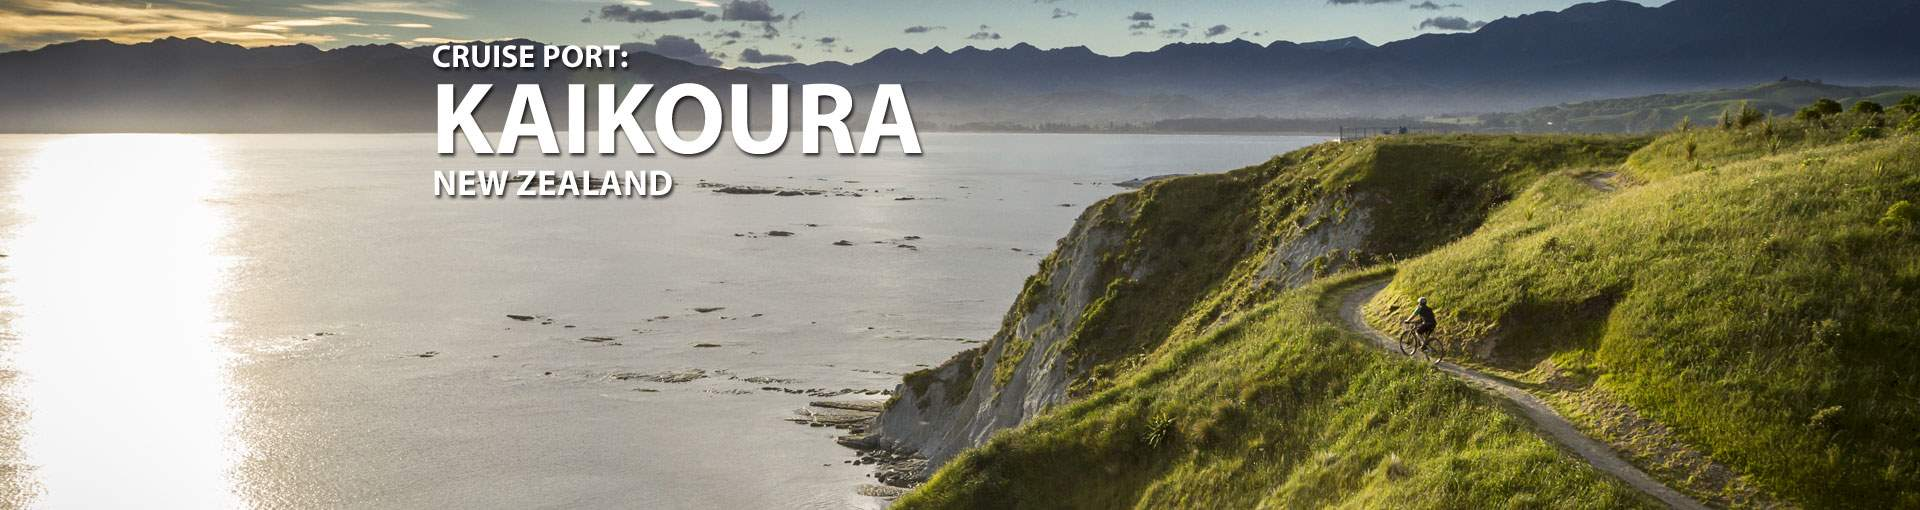 Cruises to Kaikoura, New Zealand